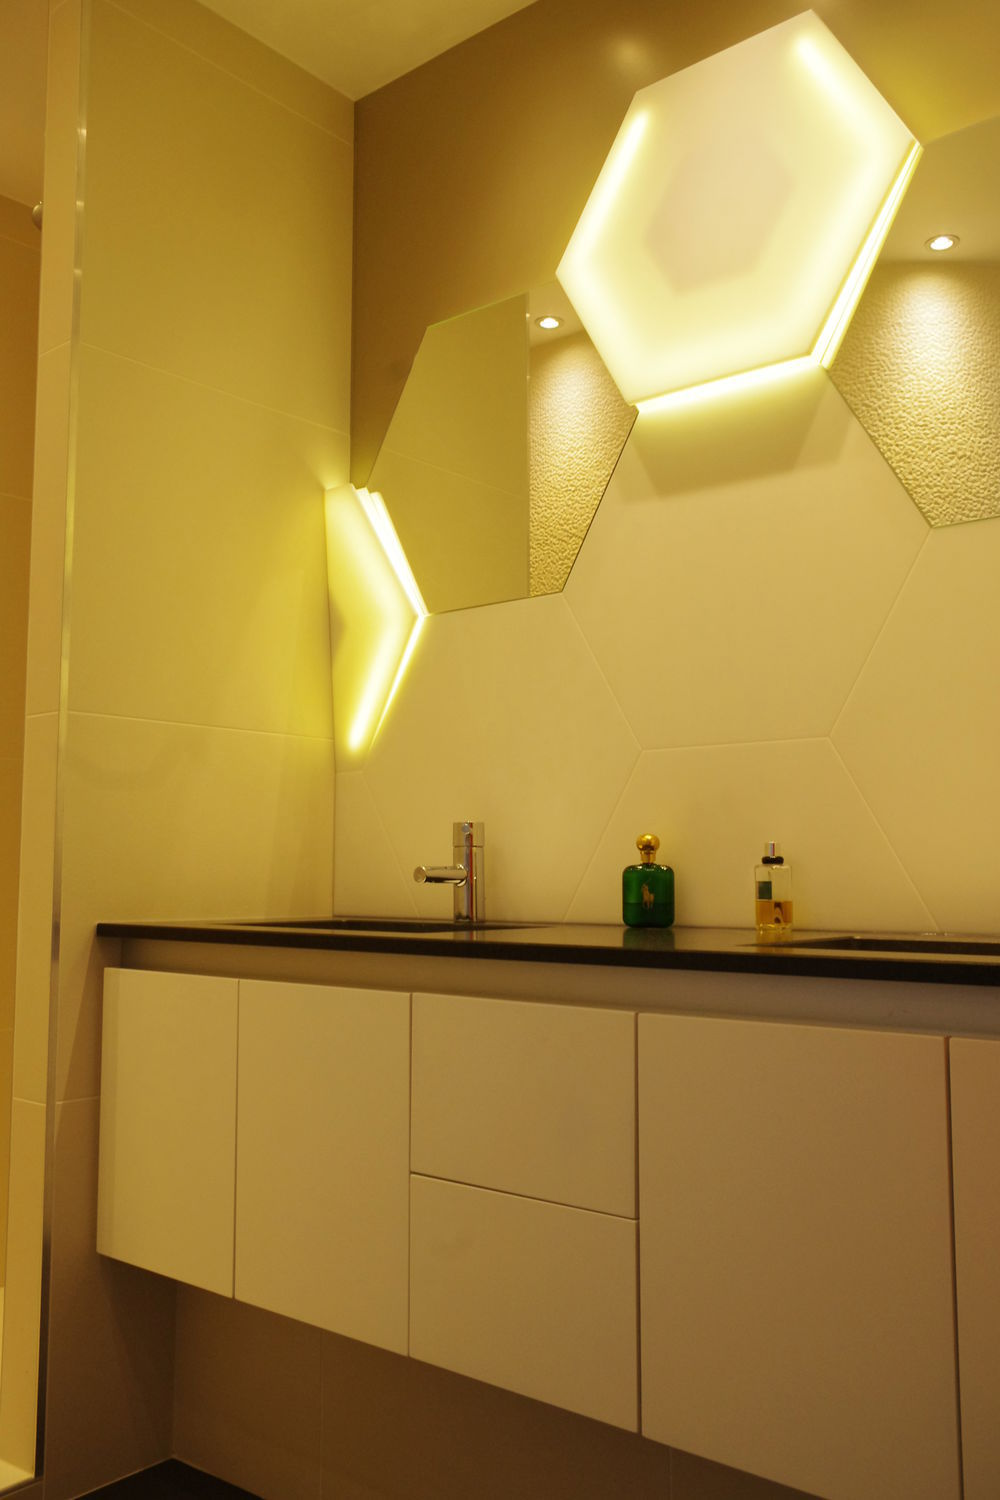 Contemporary wall light   bathroom   Solid Surface   hexagonal V korr. Contemporary wall light   bathroom   Solid Surface   hexagonal   V